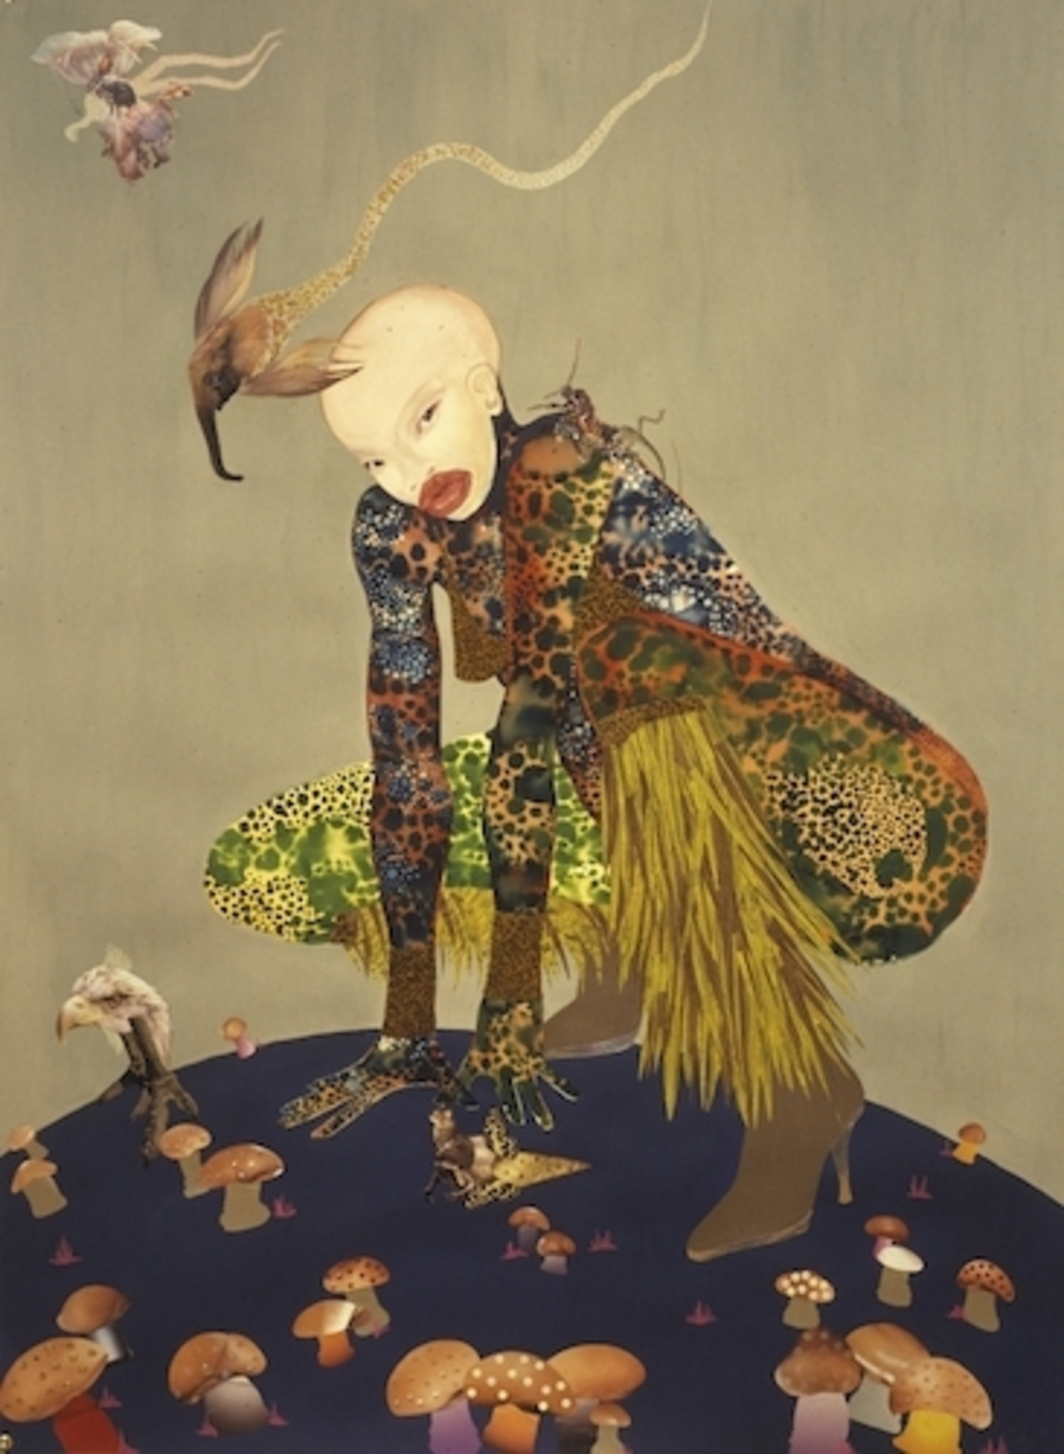 "Wangechi Mutu, Riding Death in My Sleep, 2002, ink collage on paper, 60 x 44""."